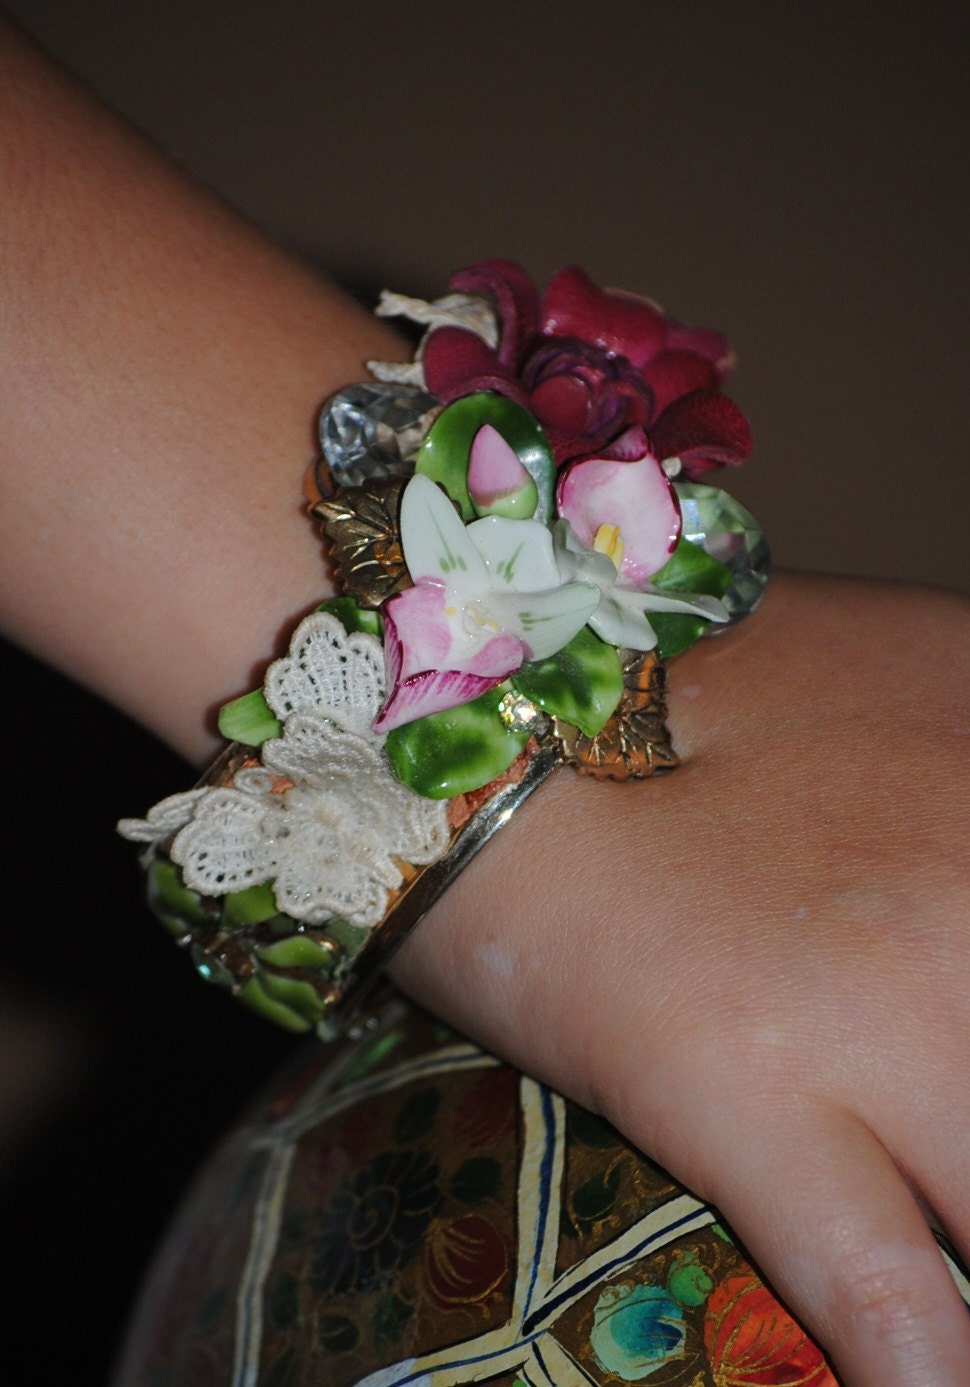 Victorian style assemblage cuff bracelet bangle OOAK